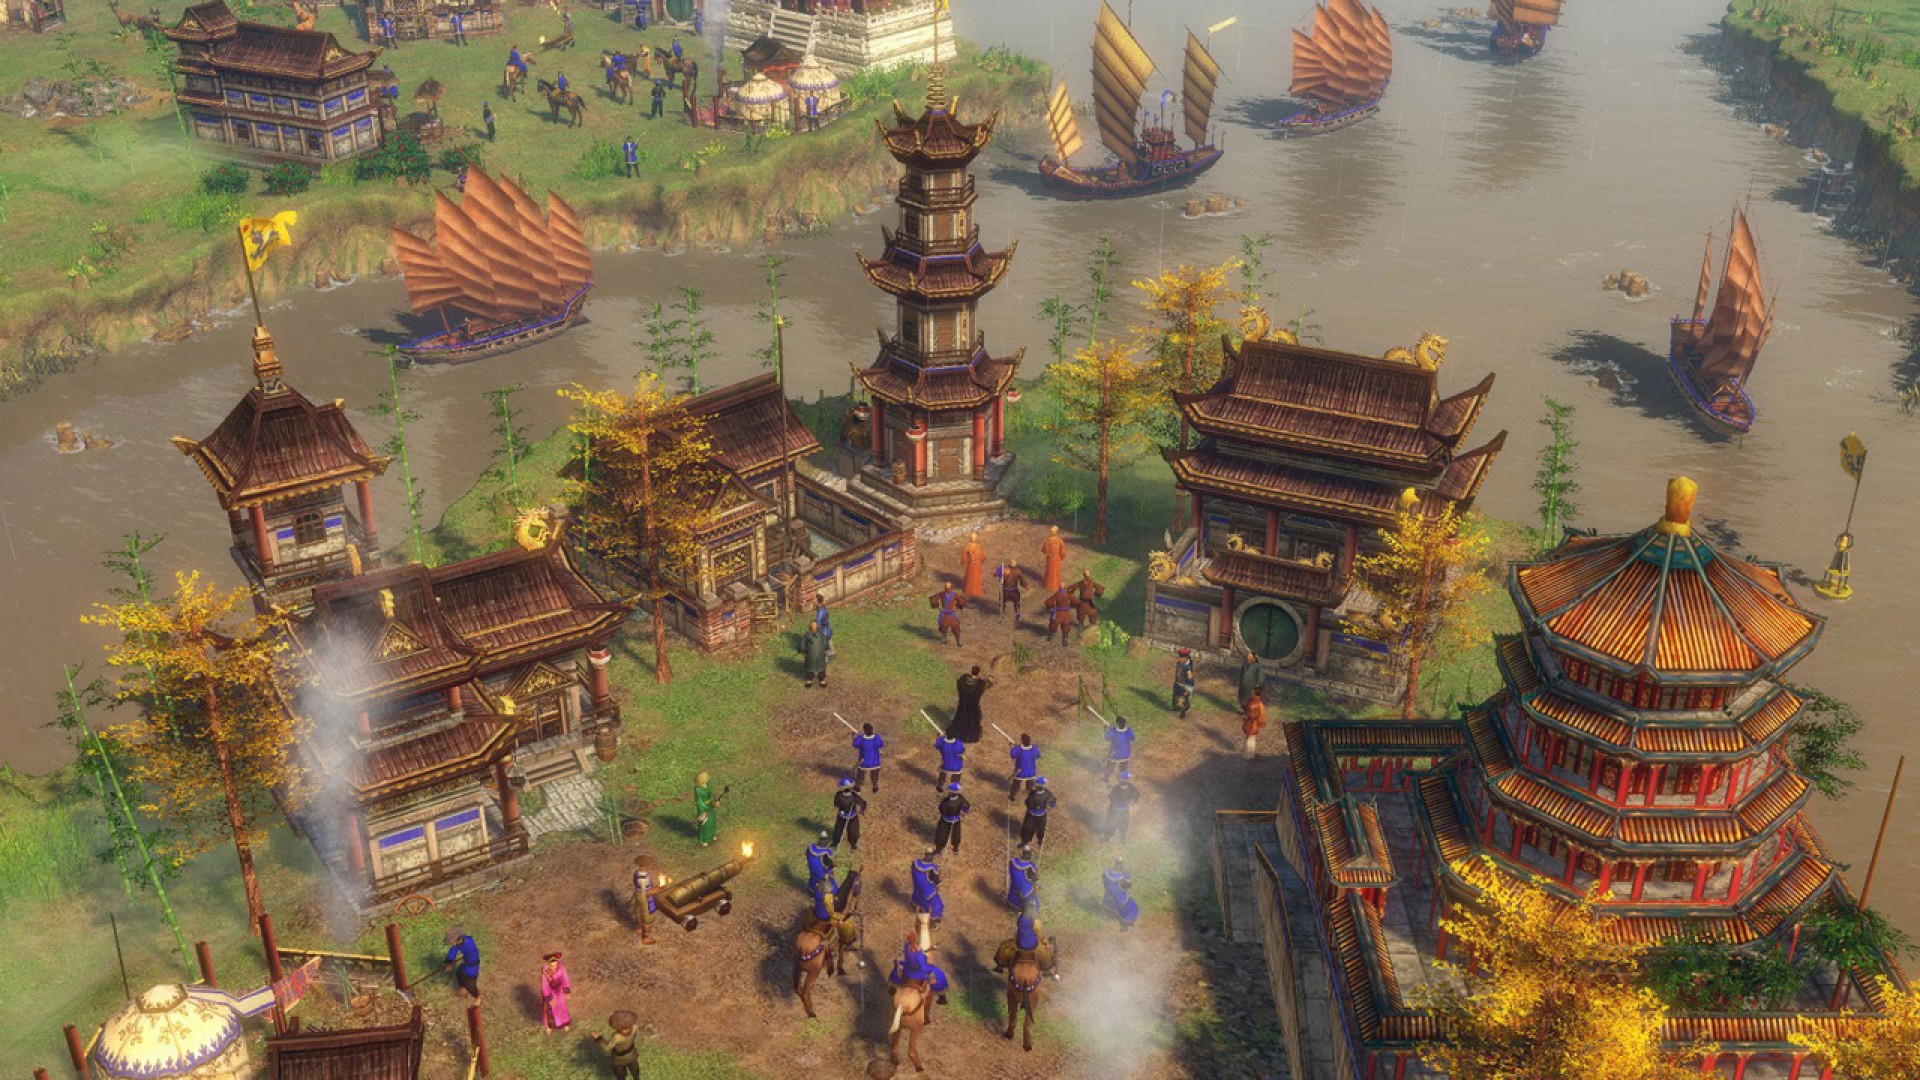 The Age of Empires 3 Definitive Edition beta starts in February